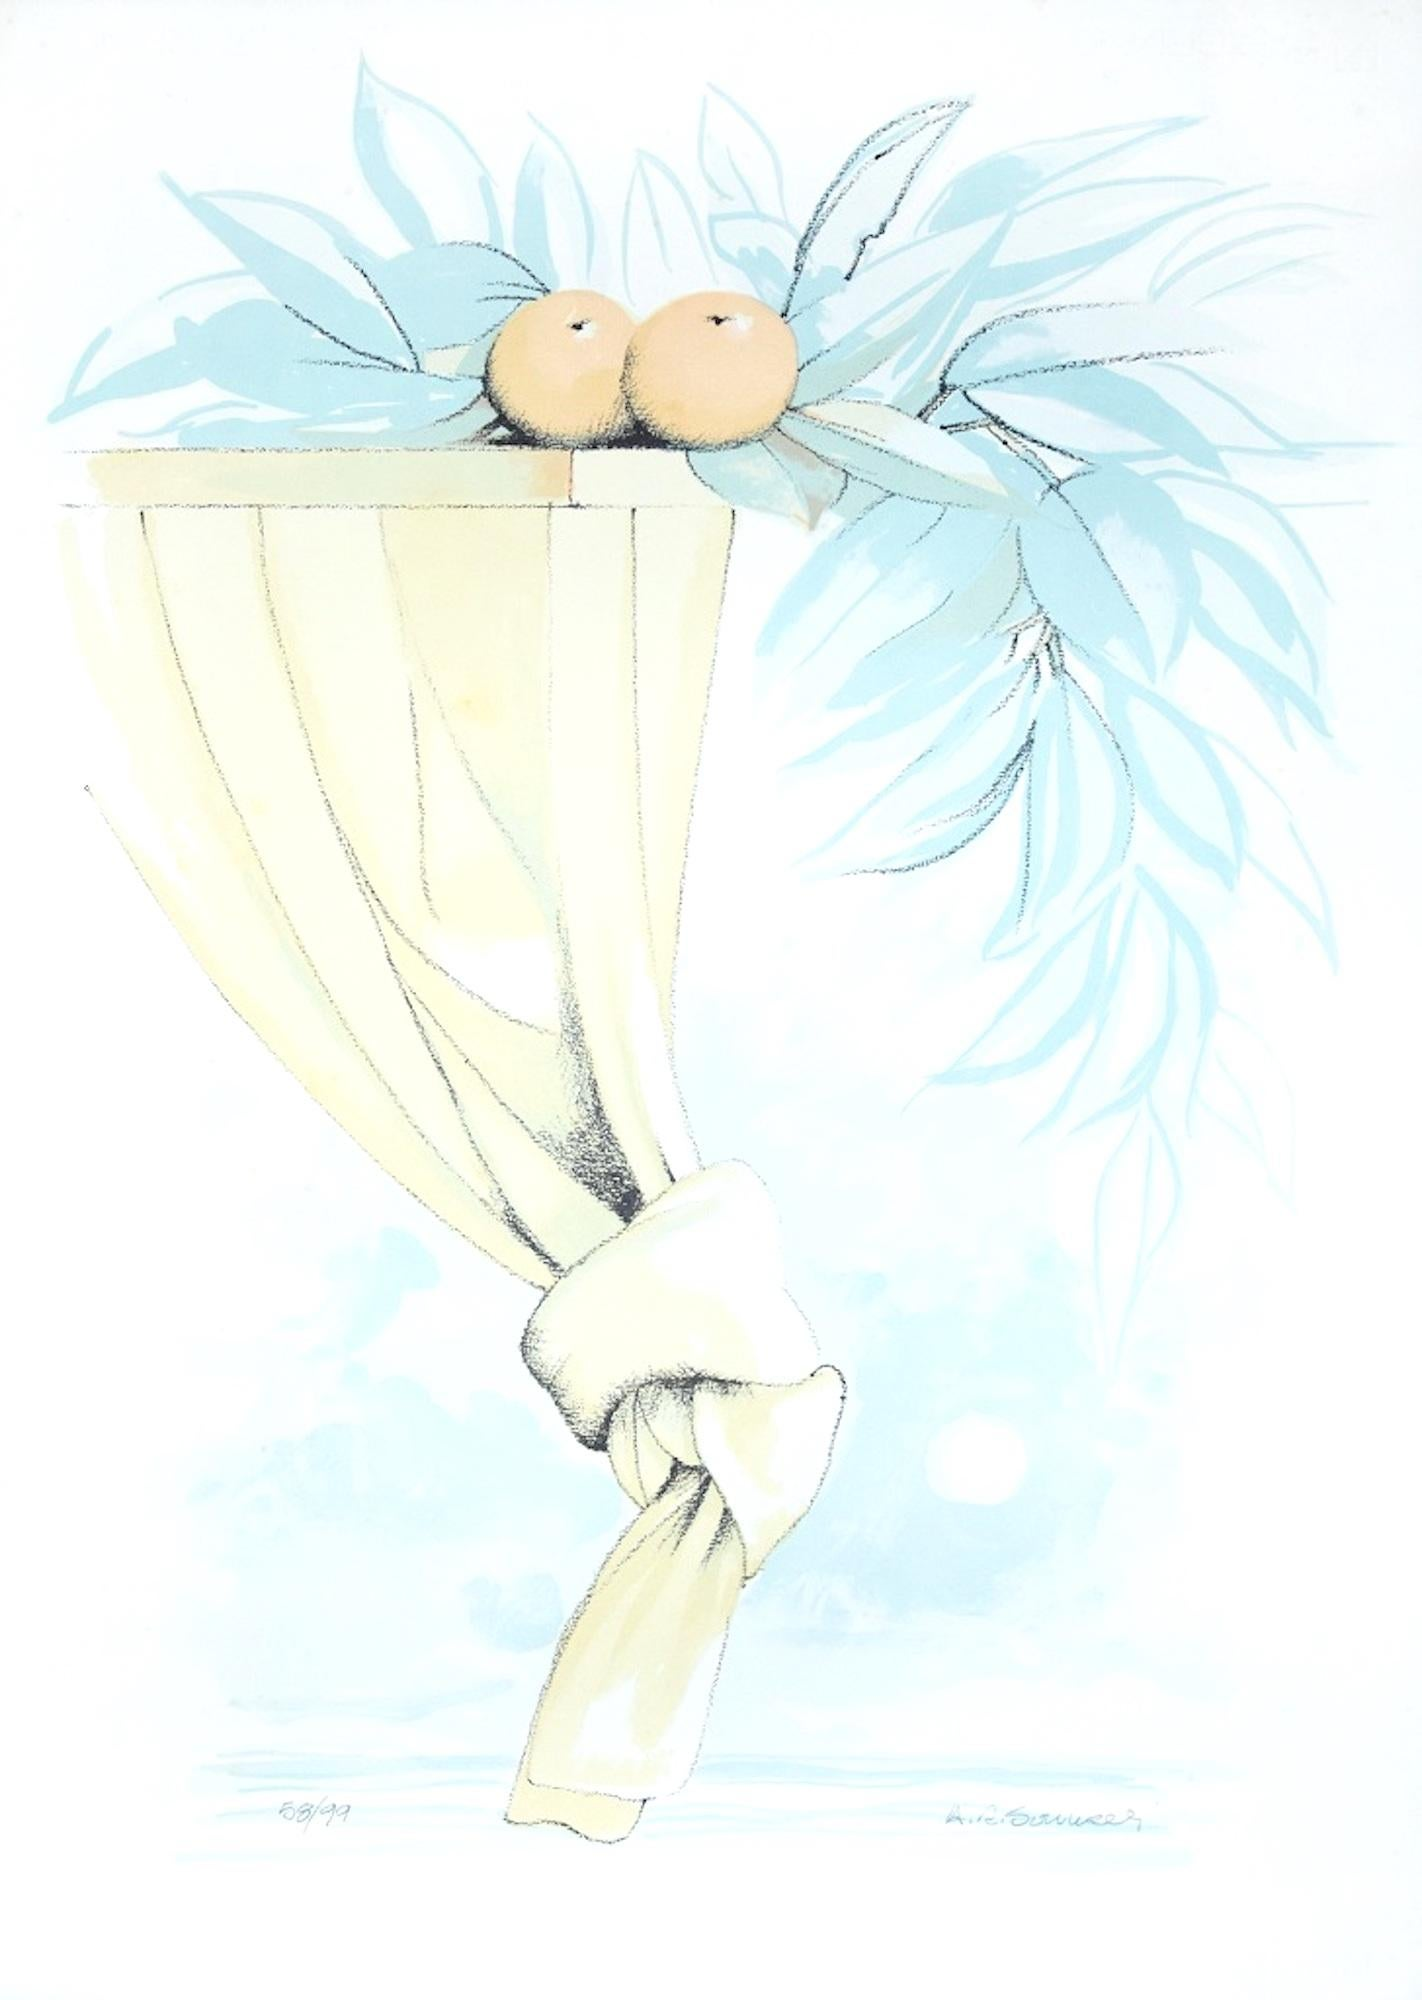 Summer Poetry - Original Lithograph by A. Russo Sarnelli - 1990s